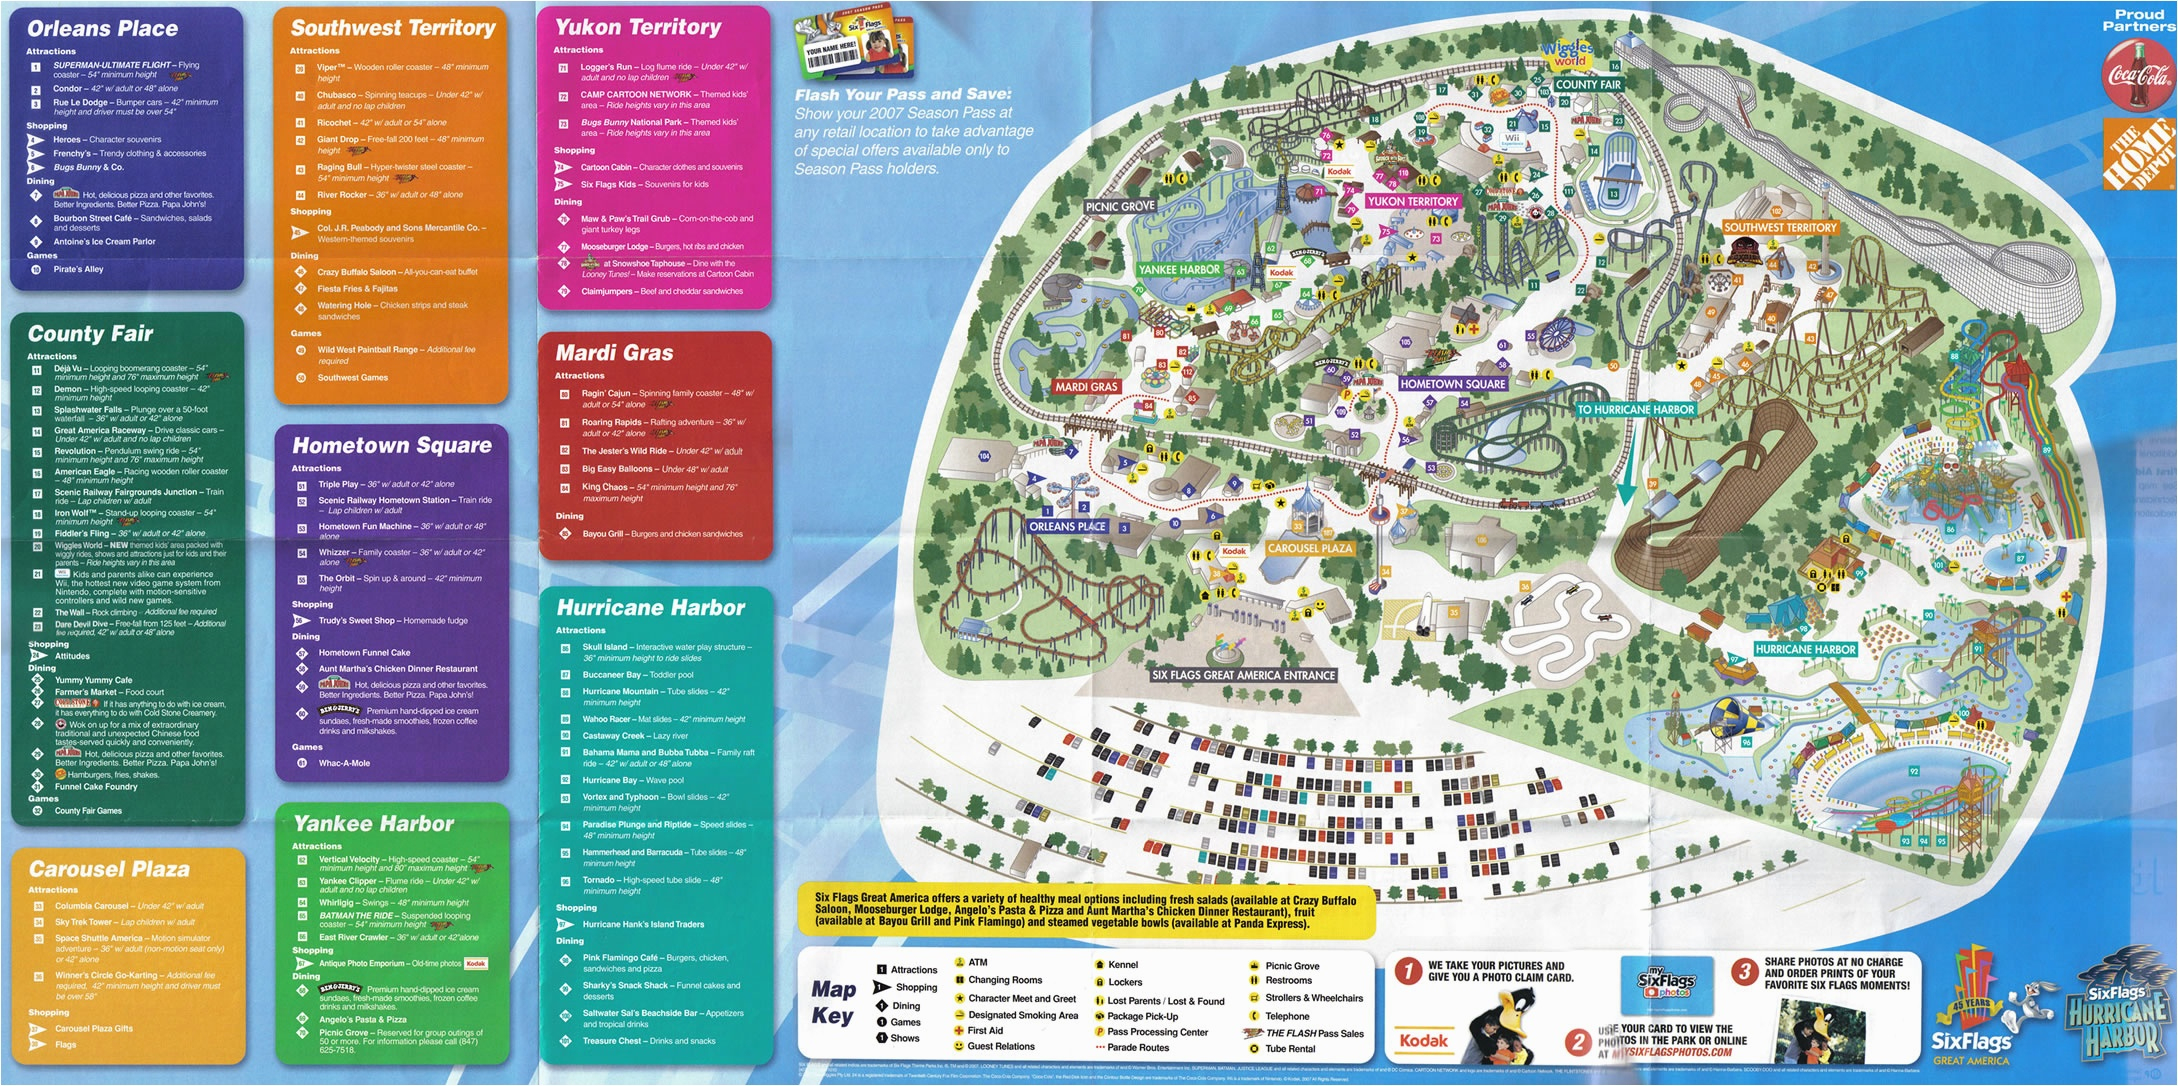 Six Flags Great America Map Burkeen Great America San Jose Map - California's Great America Map